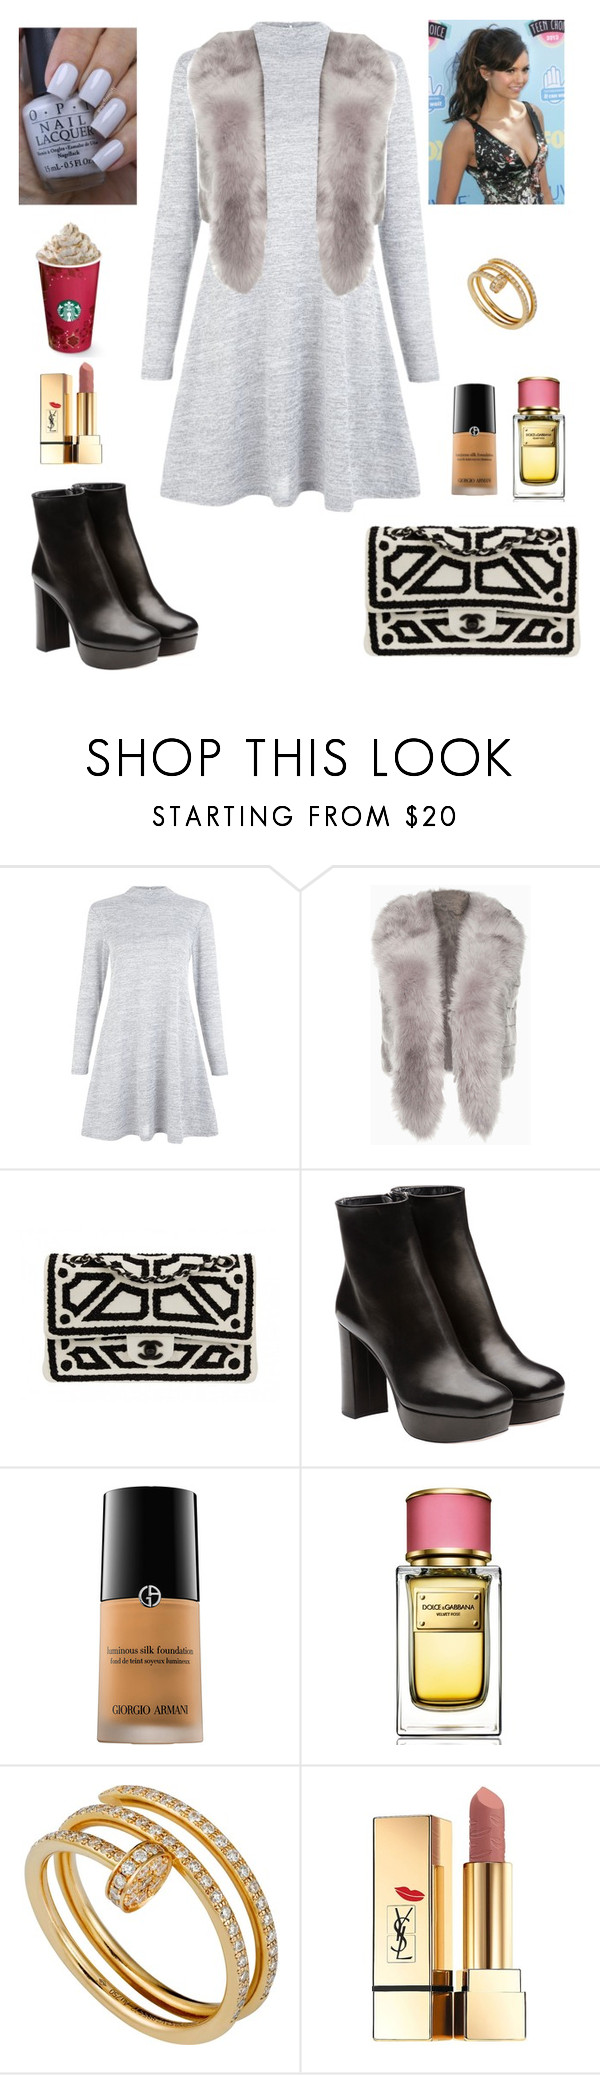 """Untitled #183"" by leah93-1 ❤ liked on Polyvore featuring New Look, Chanel, Miu Miu, OPI, Giorgio Armani, Dolce&Gabbana, Cartier and Yves Saint Laurent"